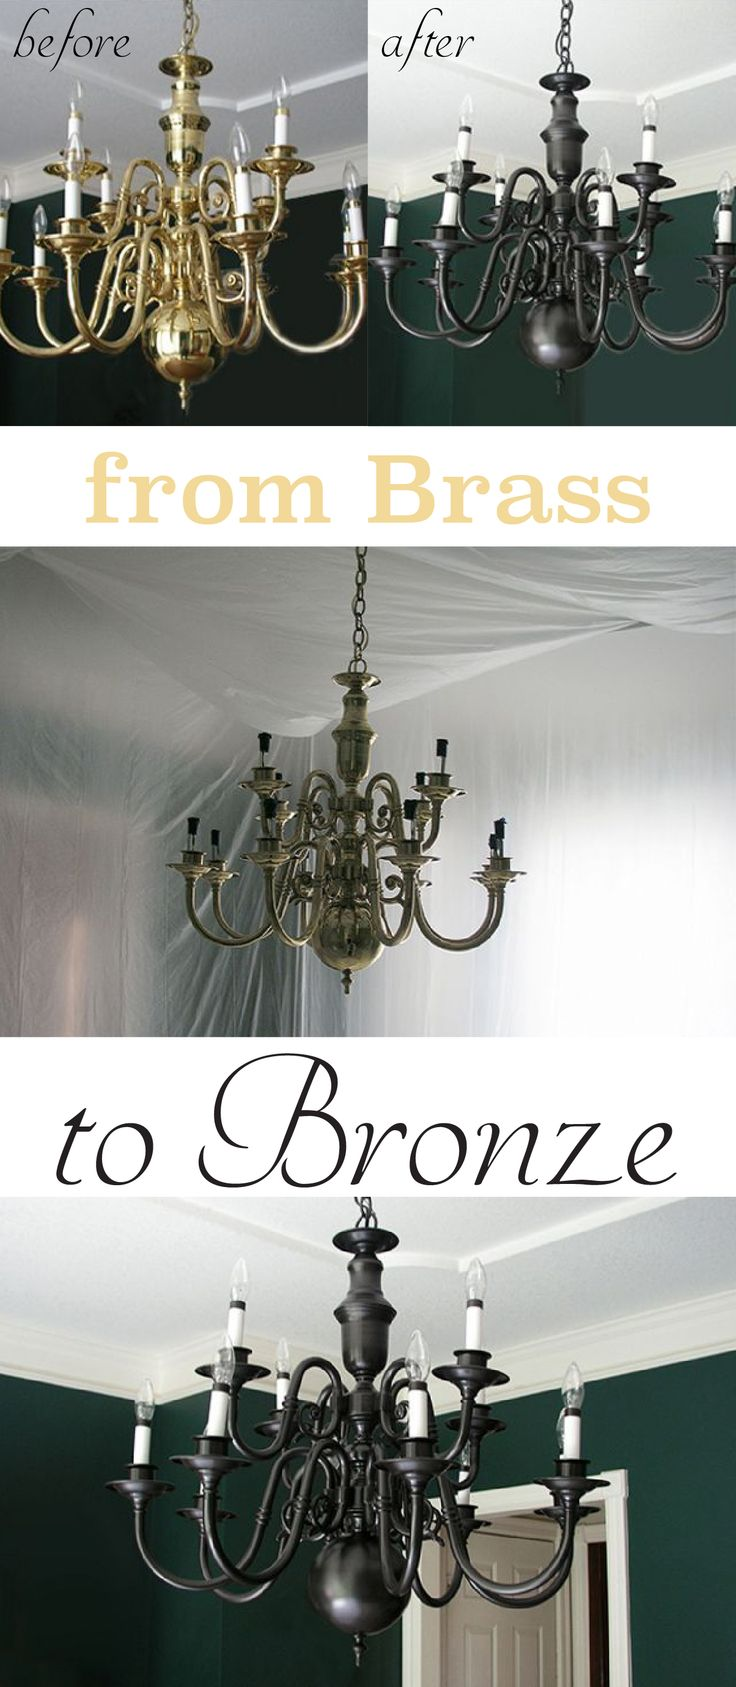 Update that old brass fixture with a little paint and give it a completely modern look! Check out the how-to here: http://www.ehow.com/how_12340294_redesign-chandelier-boring-brass-beautiful-bronze.html?utm_source=pinterest&utm_medium=fanpage&utm_content=inline